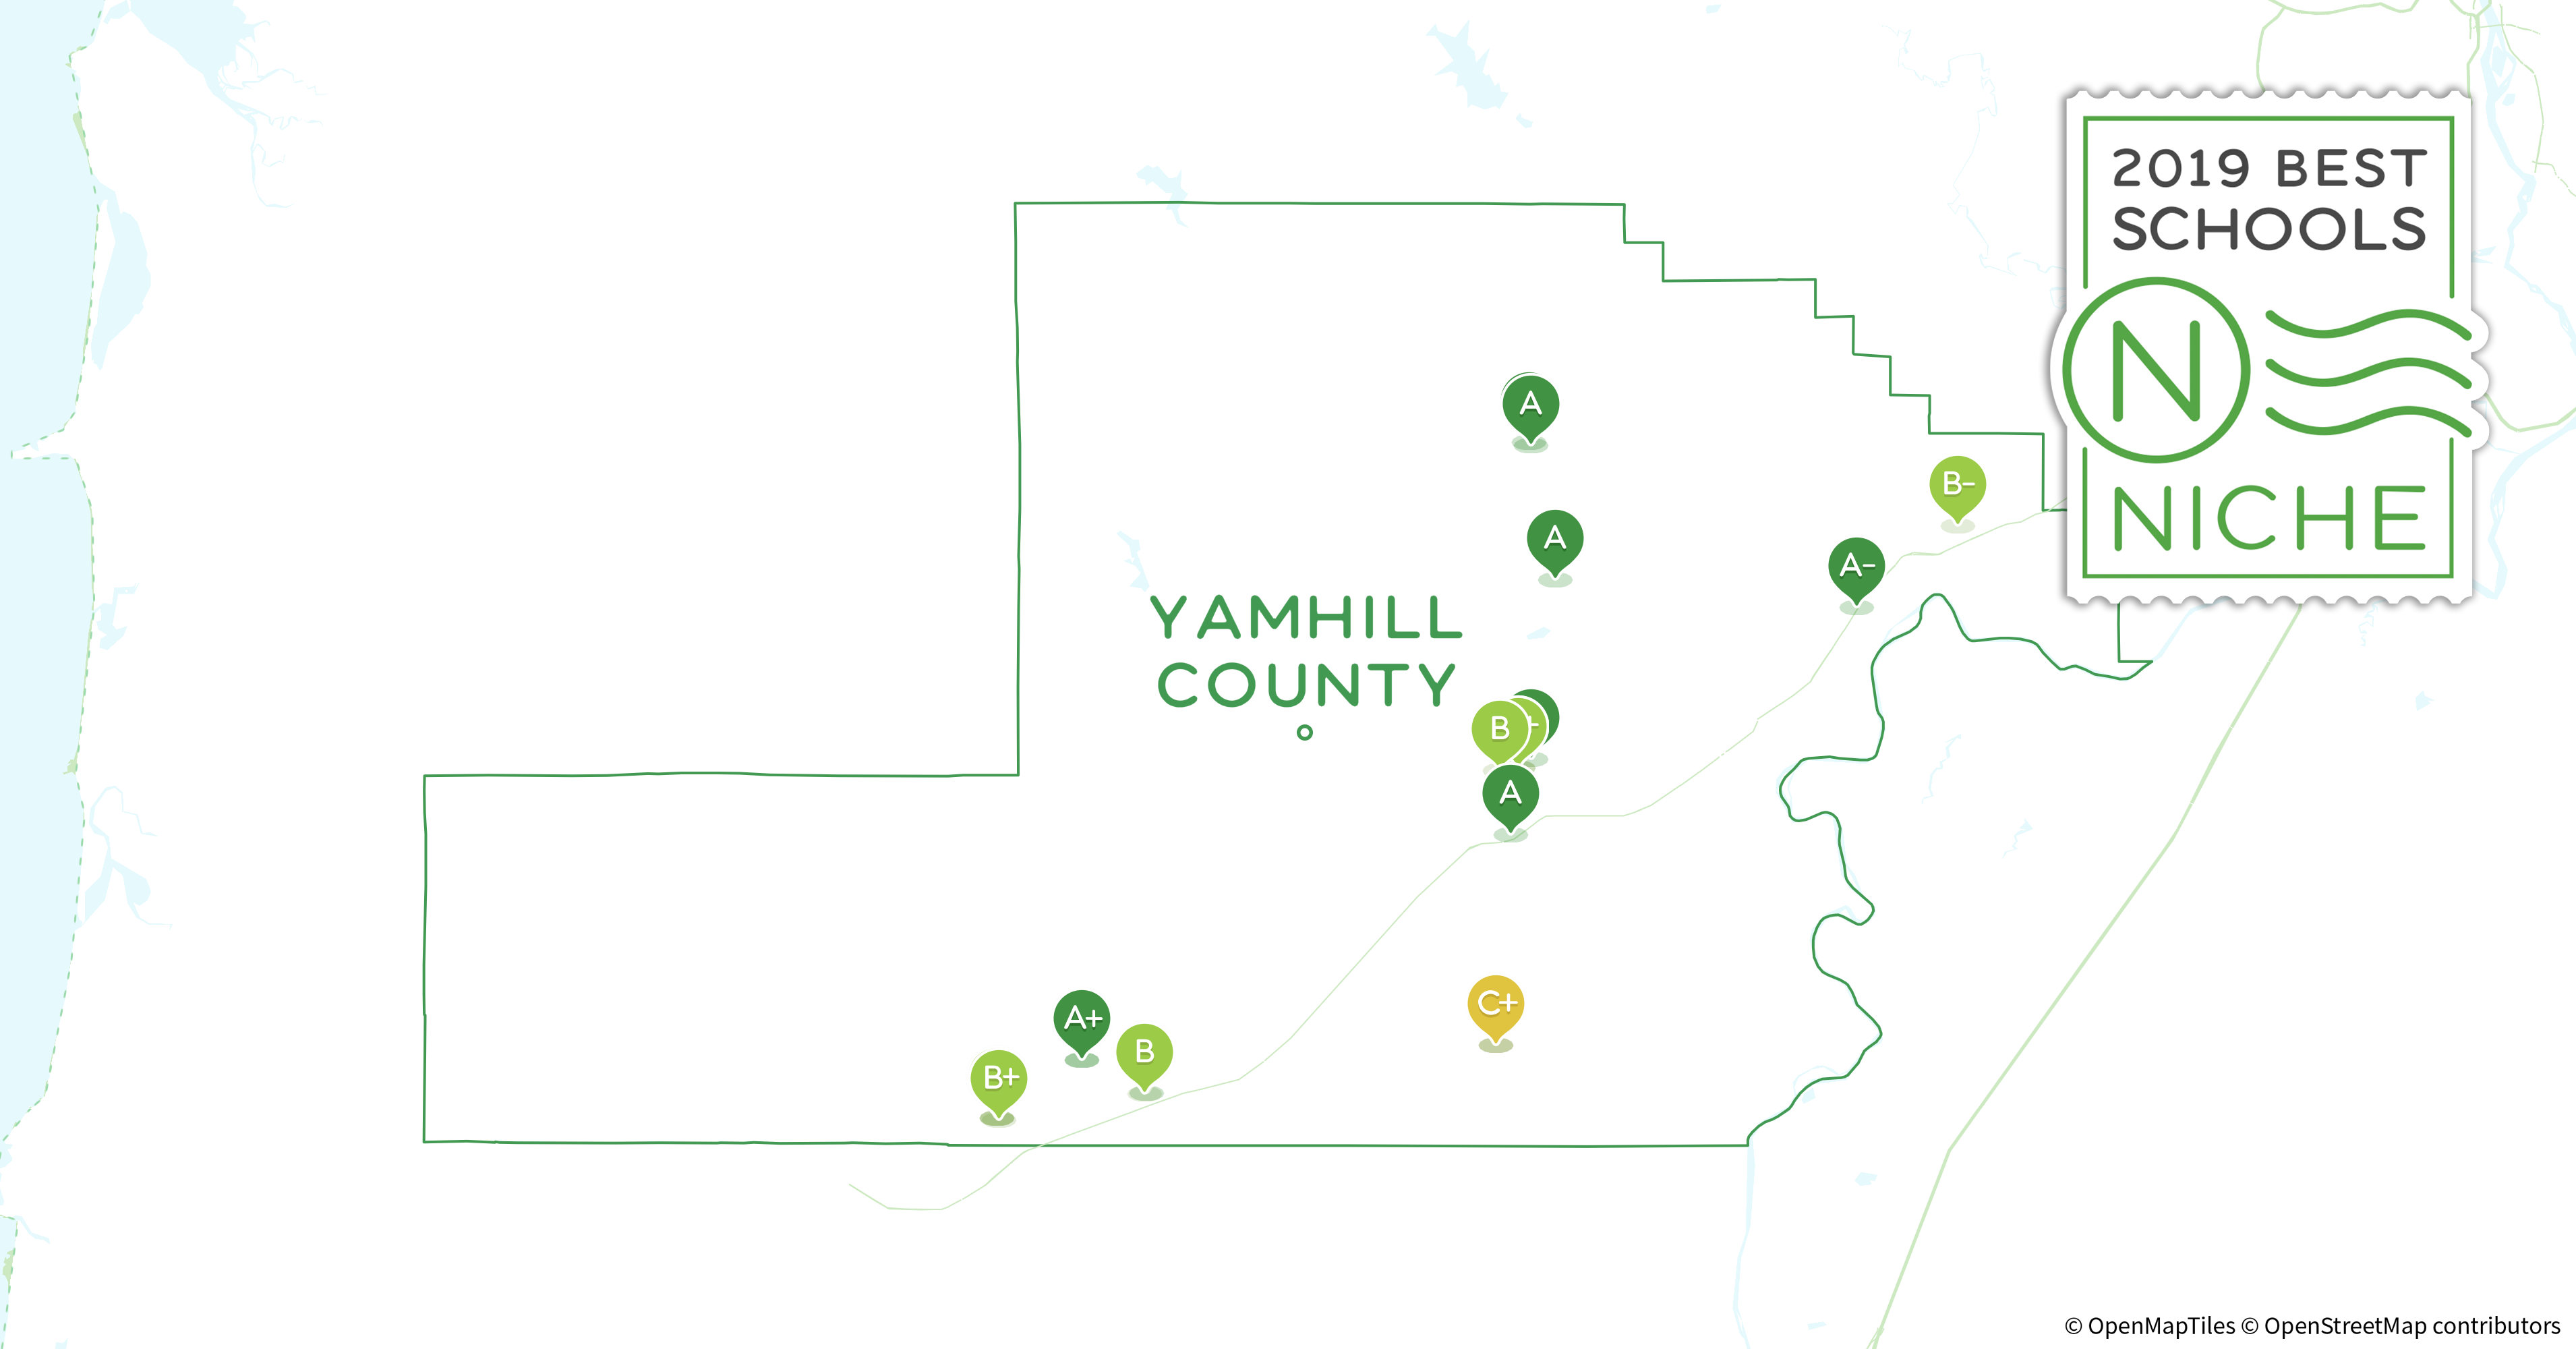 2019 Best High s in Yamhill County, OR - Niche Yamhill County Map on mcminnville map, oregon map, carlton or map, willamette valley county map, durham county map, kanabec county map, lincoln county map, linn county map, dunthorpe map, cowlitz county map, weston county map, clackamas county map, albany county map, columbia county map, dayton county map, portland county map, ashland county map, eugene county map, wallowa county map, marion county map,